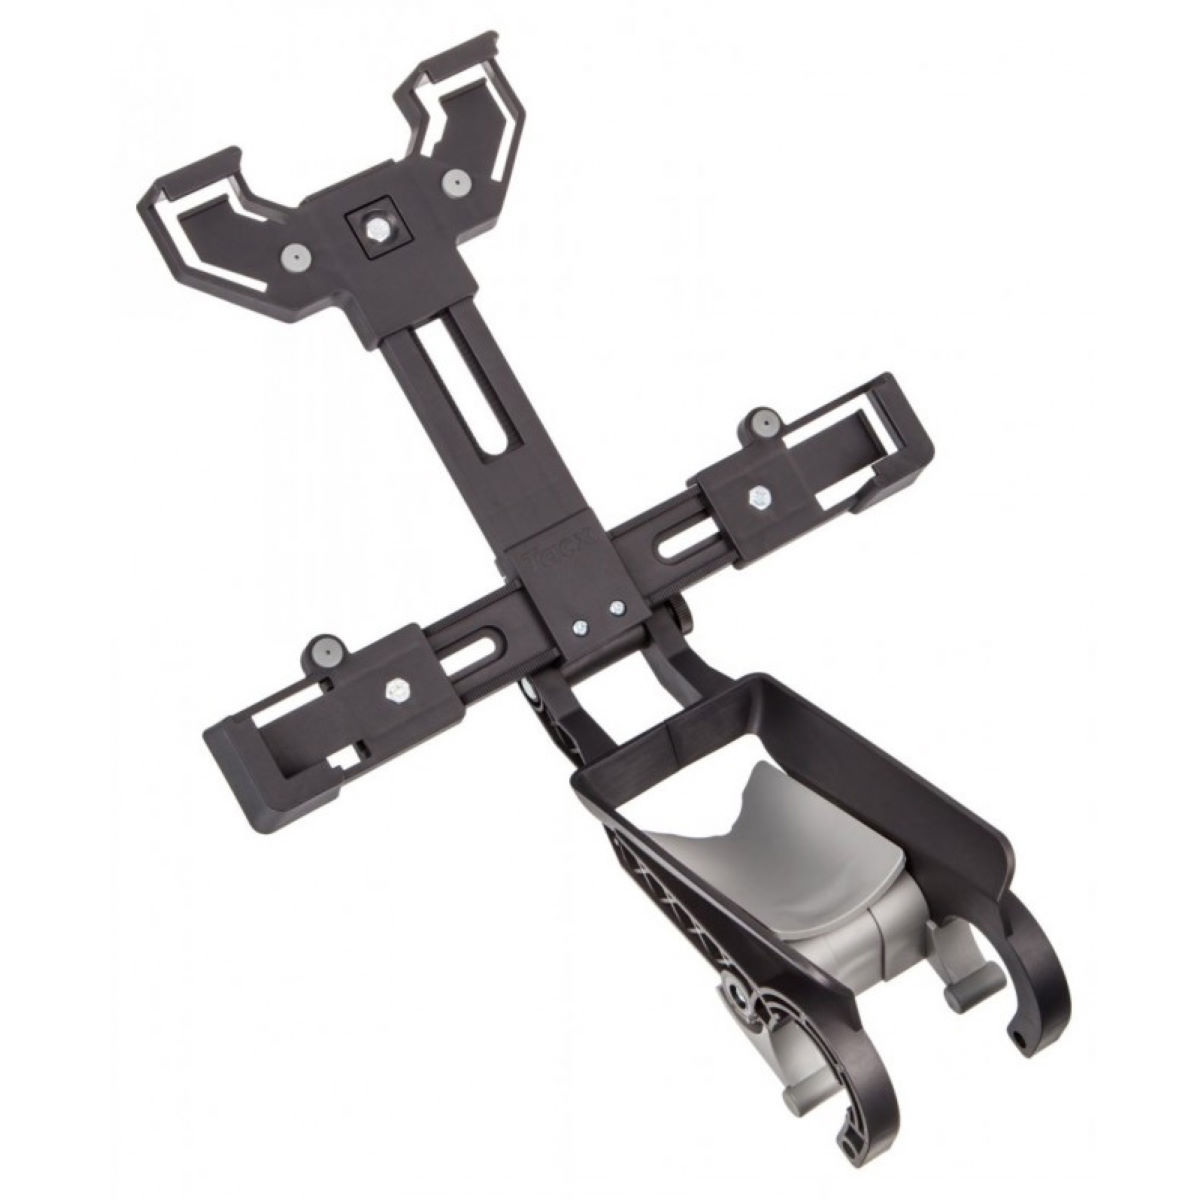 Support de fixation Tacx (pour tablettes) - Option 1 One Size